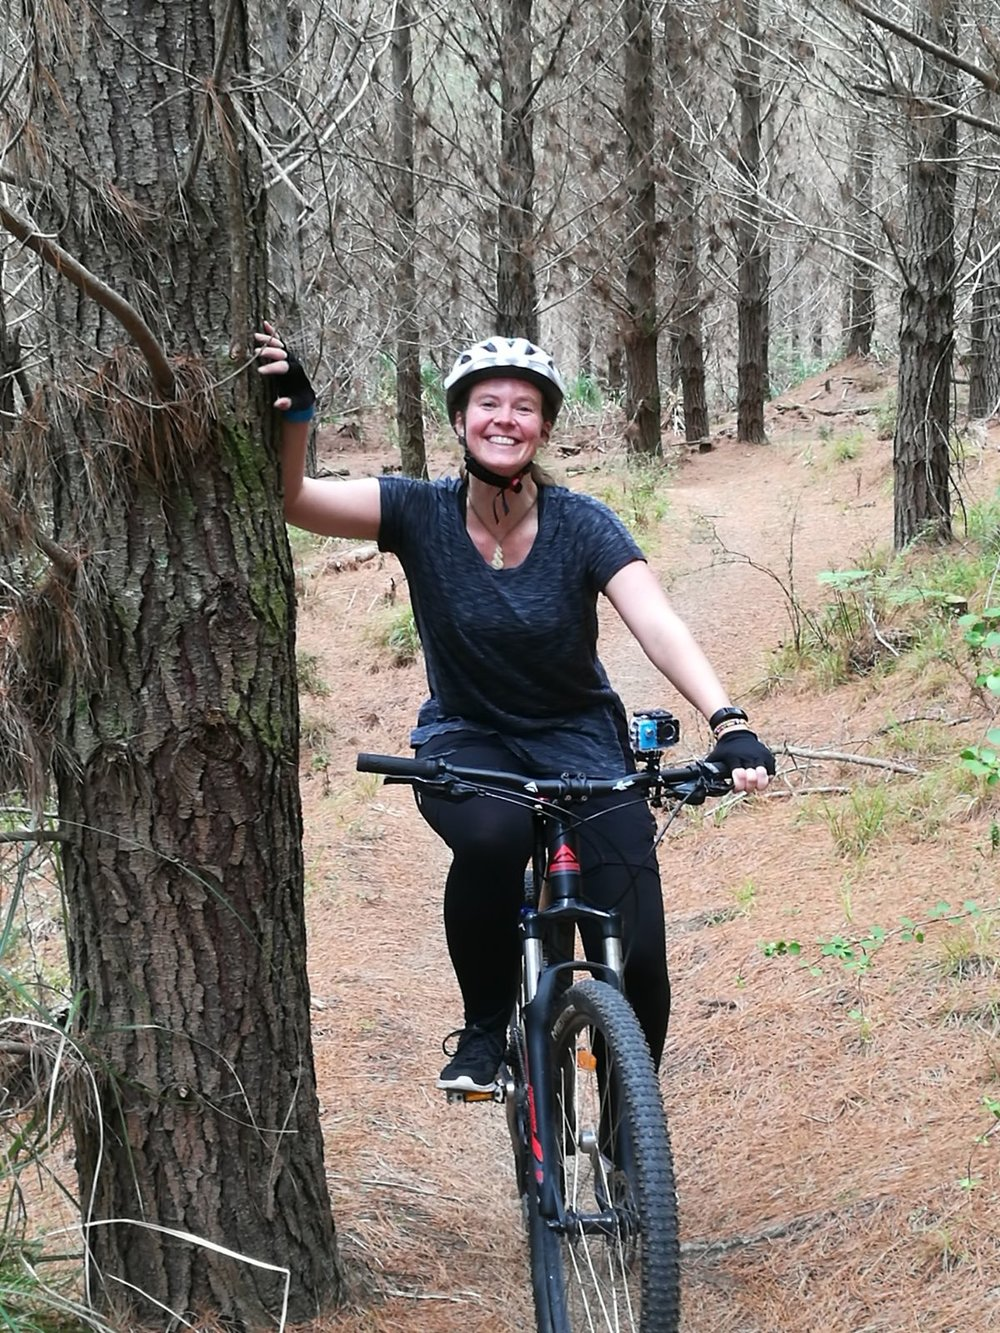 20171021_new_zealand_woodhill_alex_bike_riding.jpg